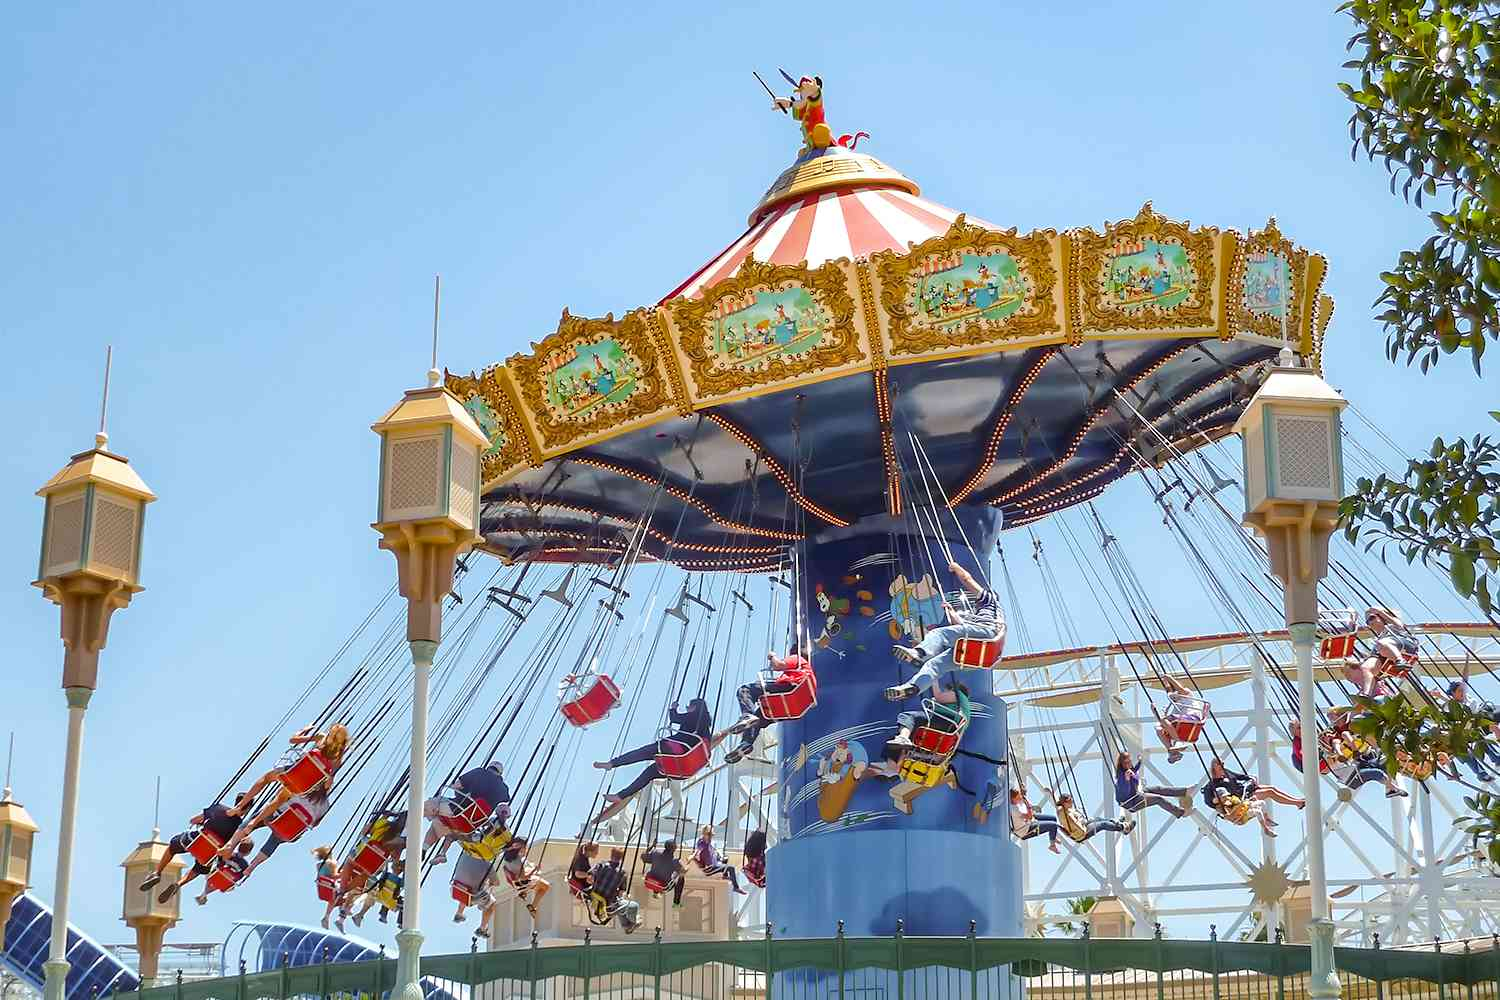 Riding Silly Symphony Swings